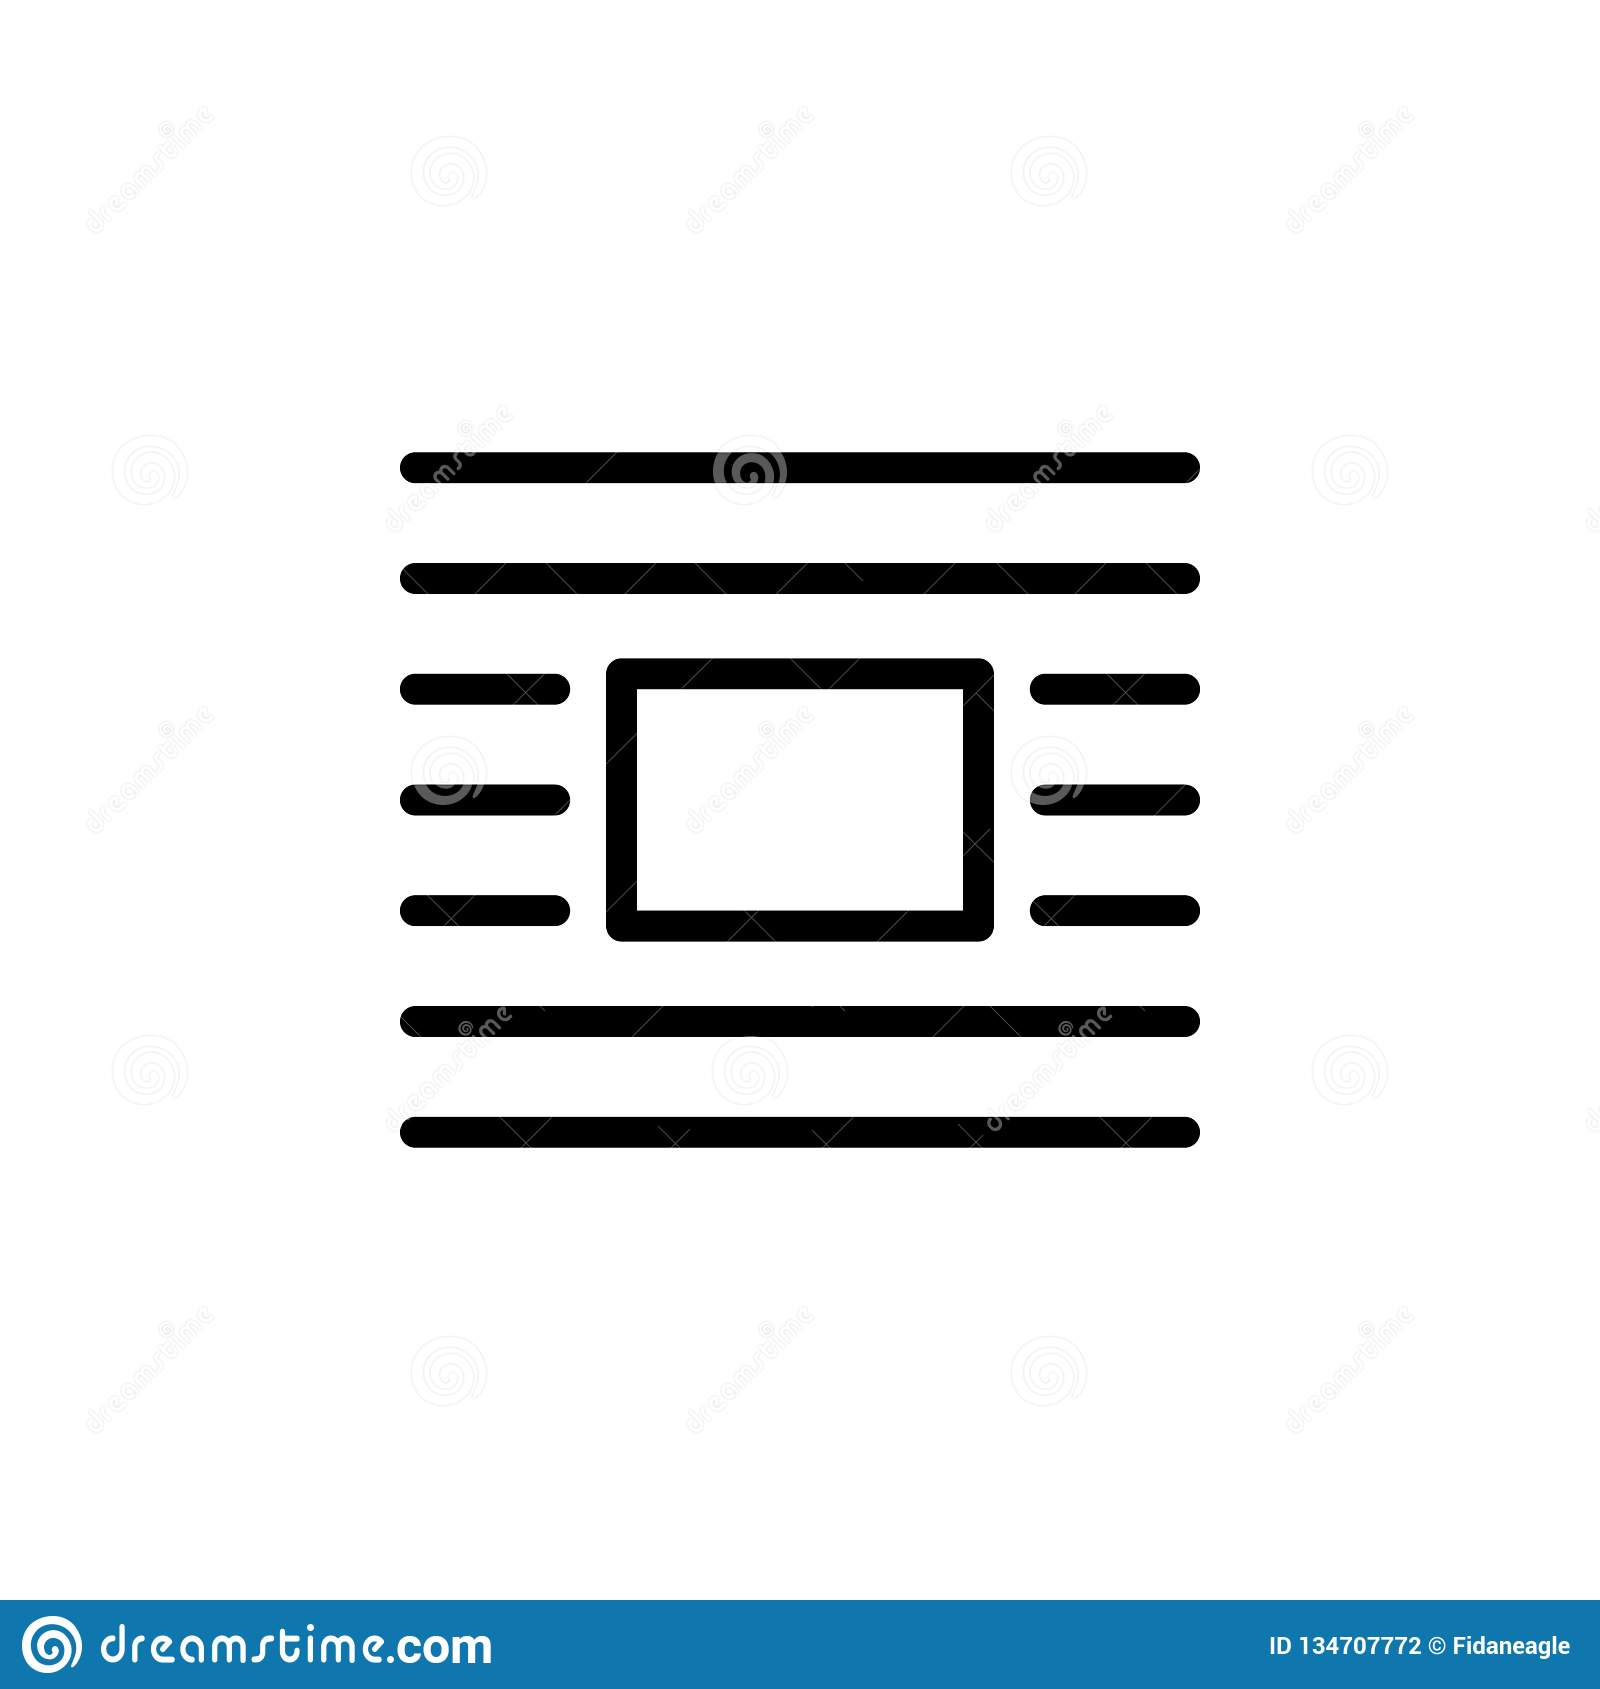 Wrap icon. Can be used for web, logo, mobile app, UI, UX